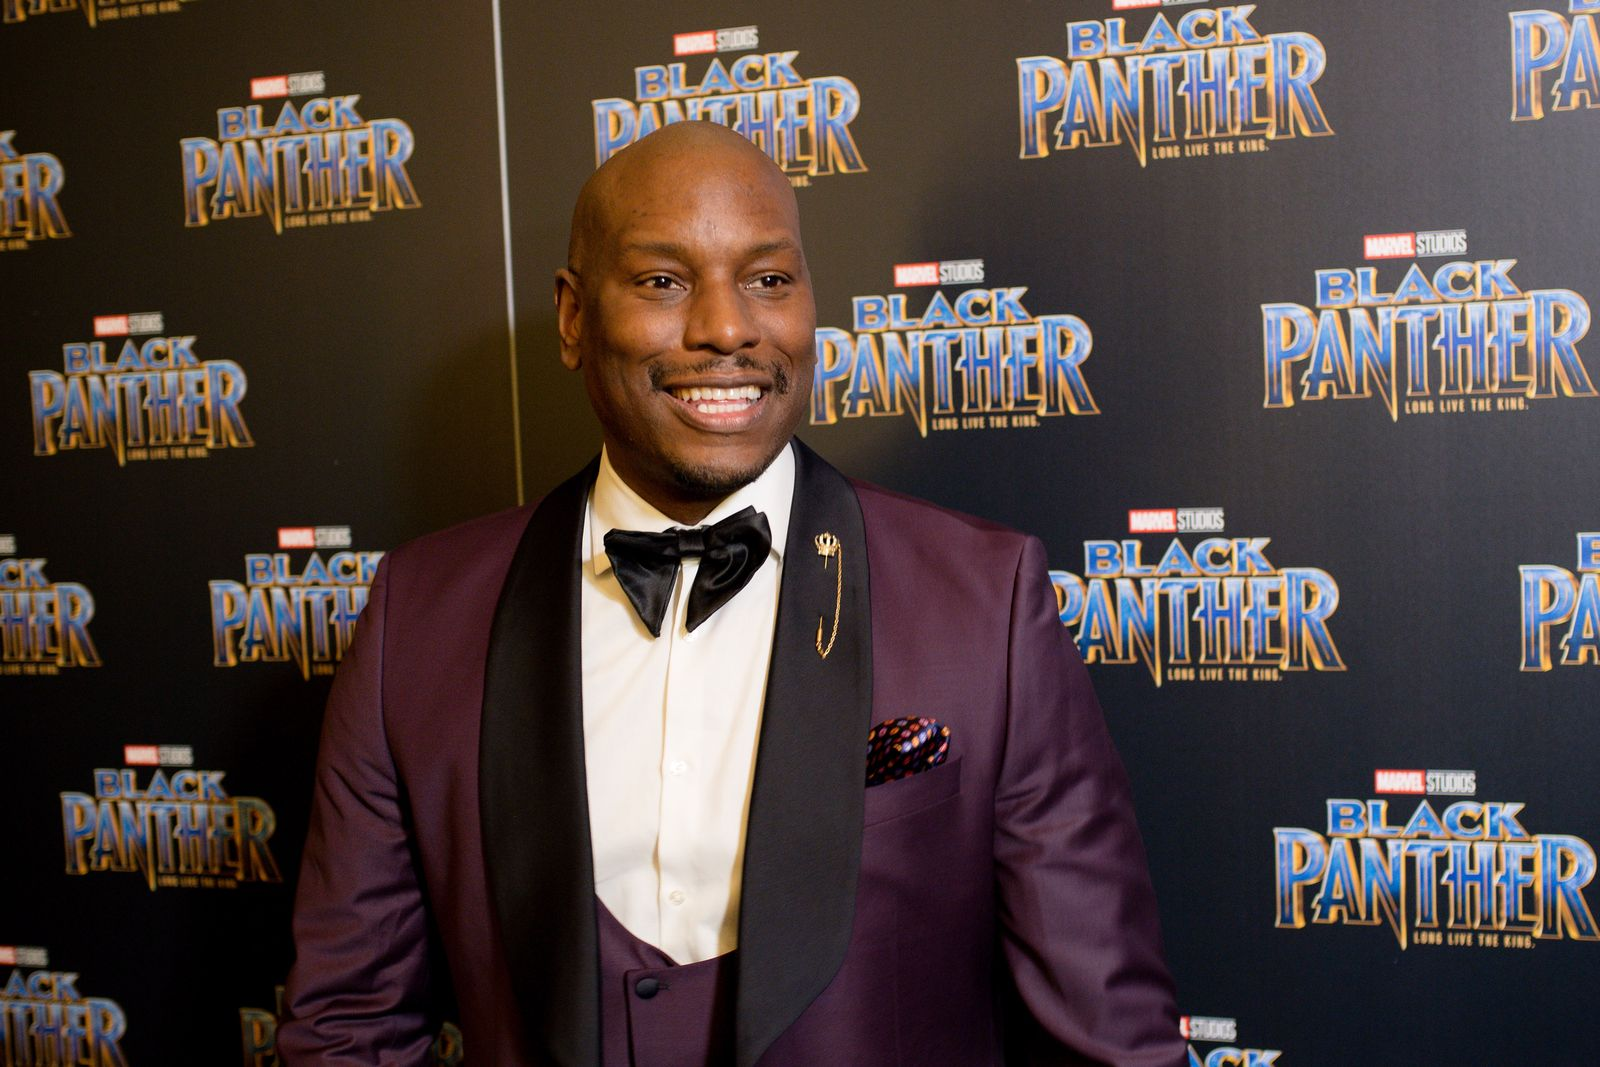 """Singer Tyrese Gibson at Marvel Studios' """"Black Panther"""" Atlanta movie screening at The Fox Theatre on February 7, 2018. 